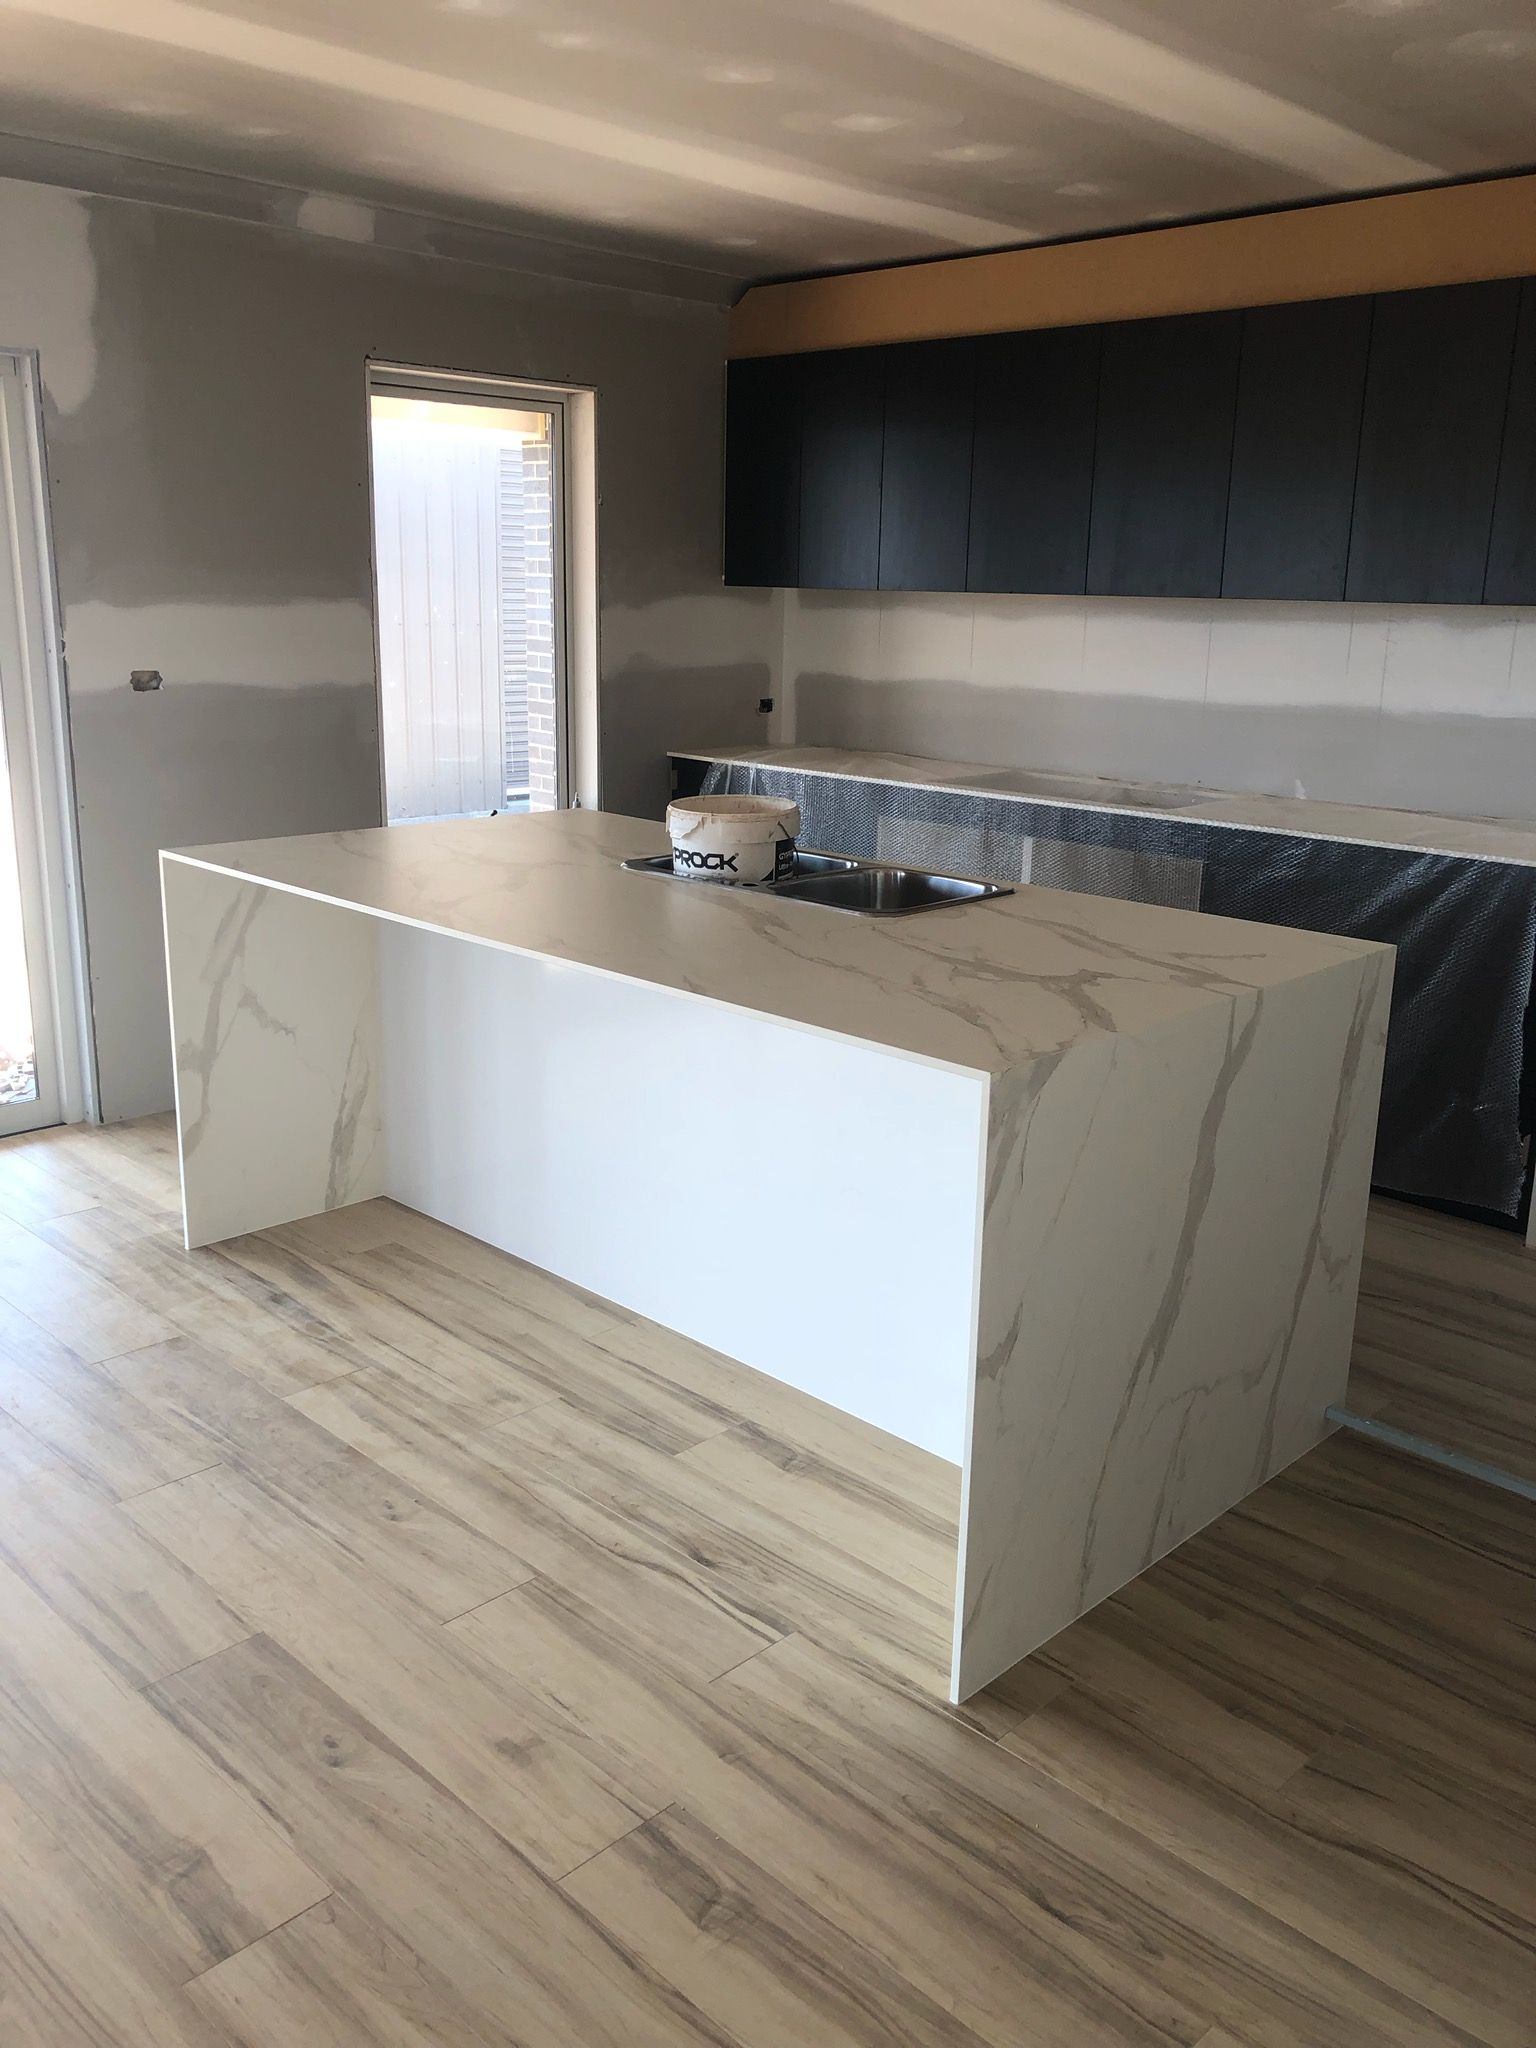 Xenolith polytec benchtop with black finegrain cupboards